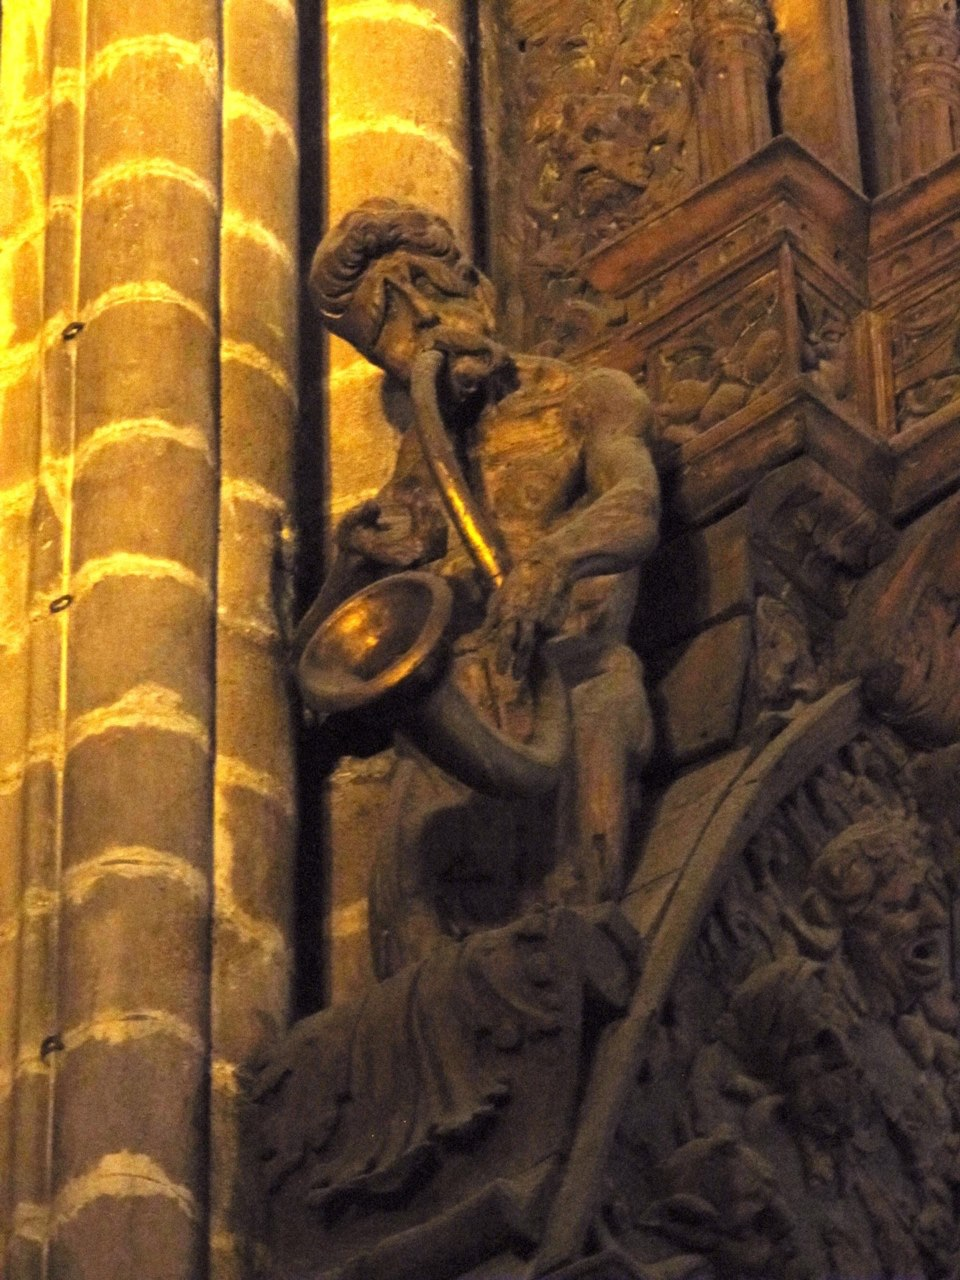 Decoration on organ case, Barcelona Cathedral